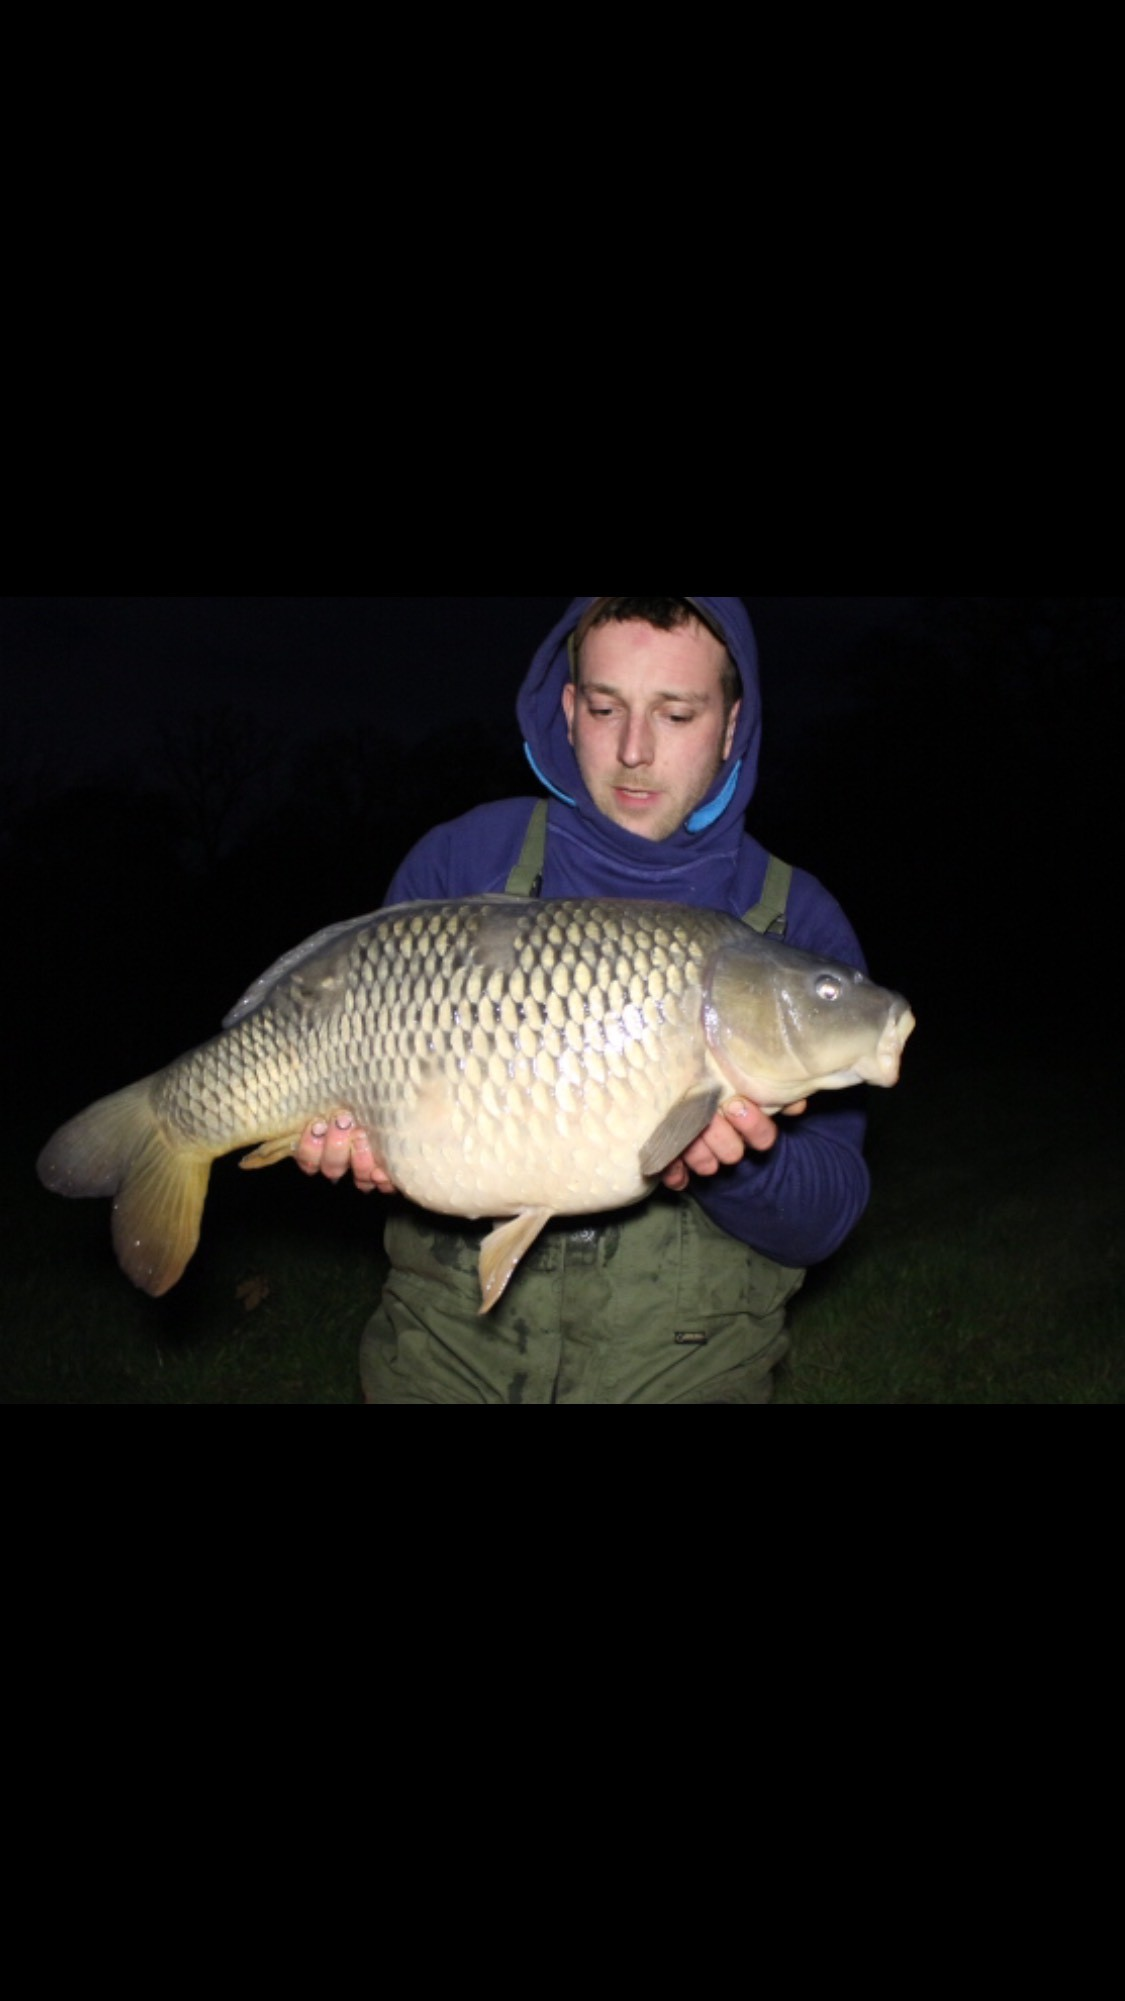 18lb 0oz  caught on